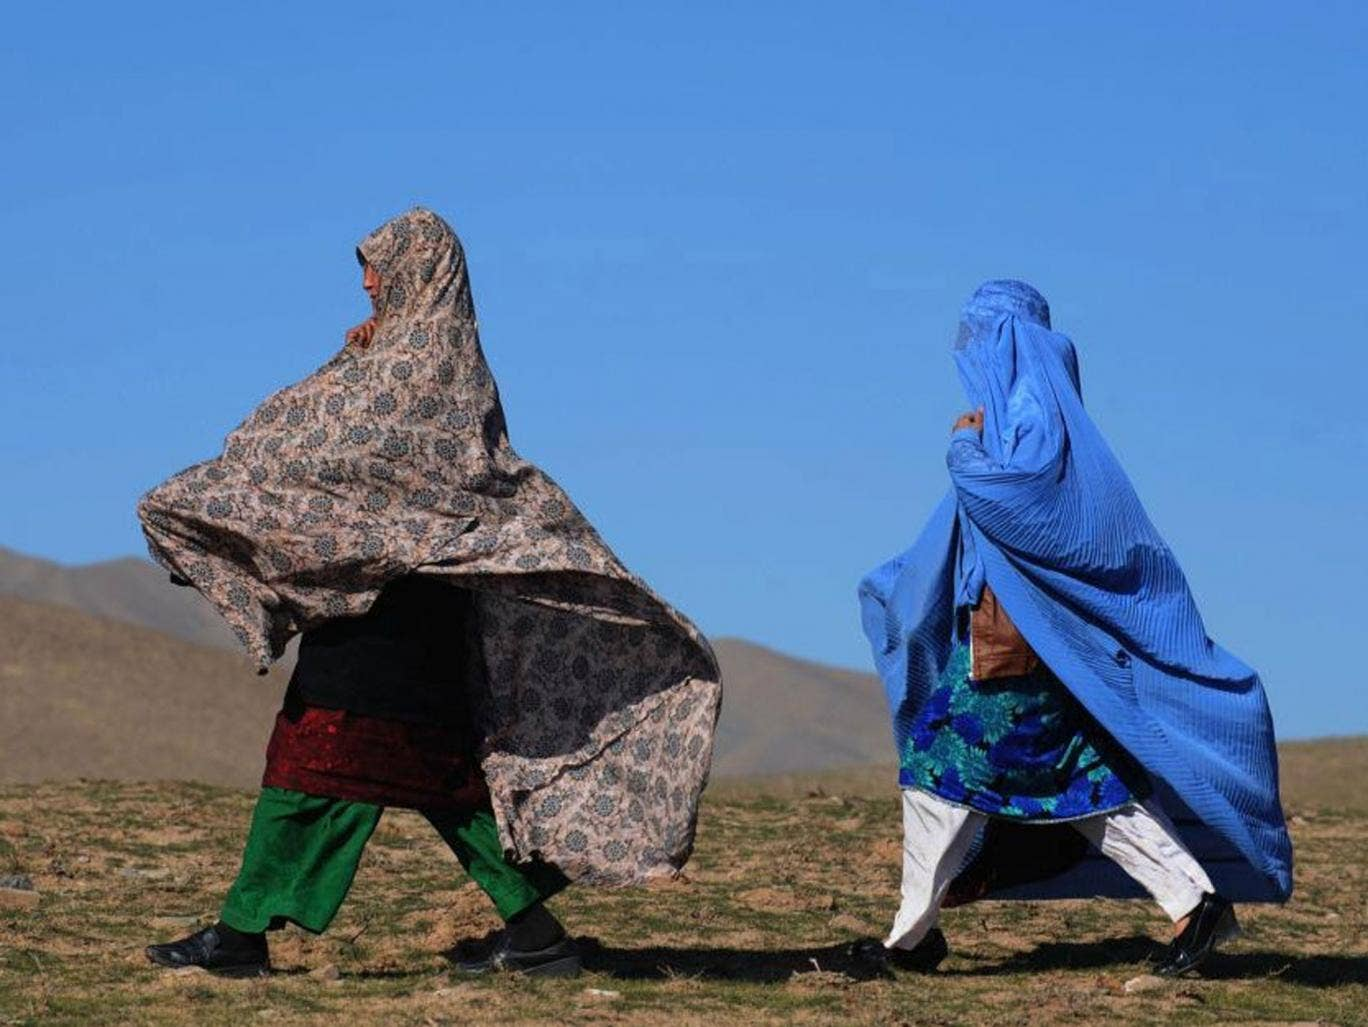 Afghan residents walk to receive winter blankets during a relief distribution programme in Herat. Decades of conflict have left Afghanistan with one of the highest internally displaced populations in the world